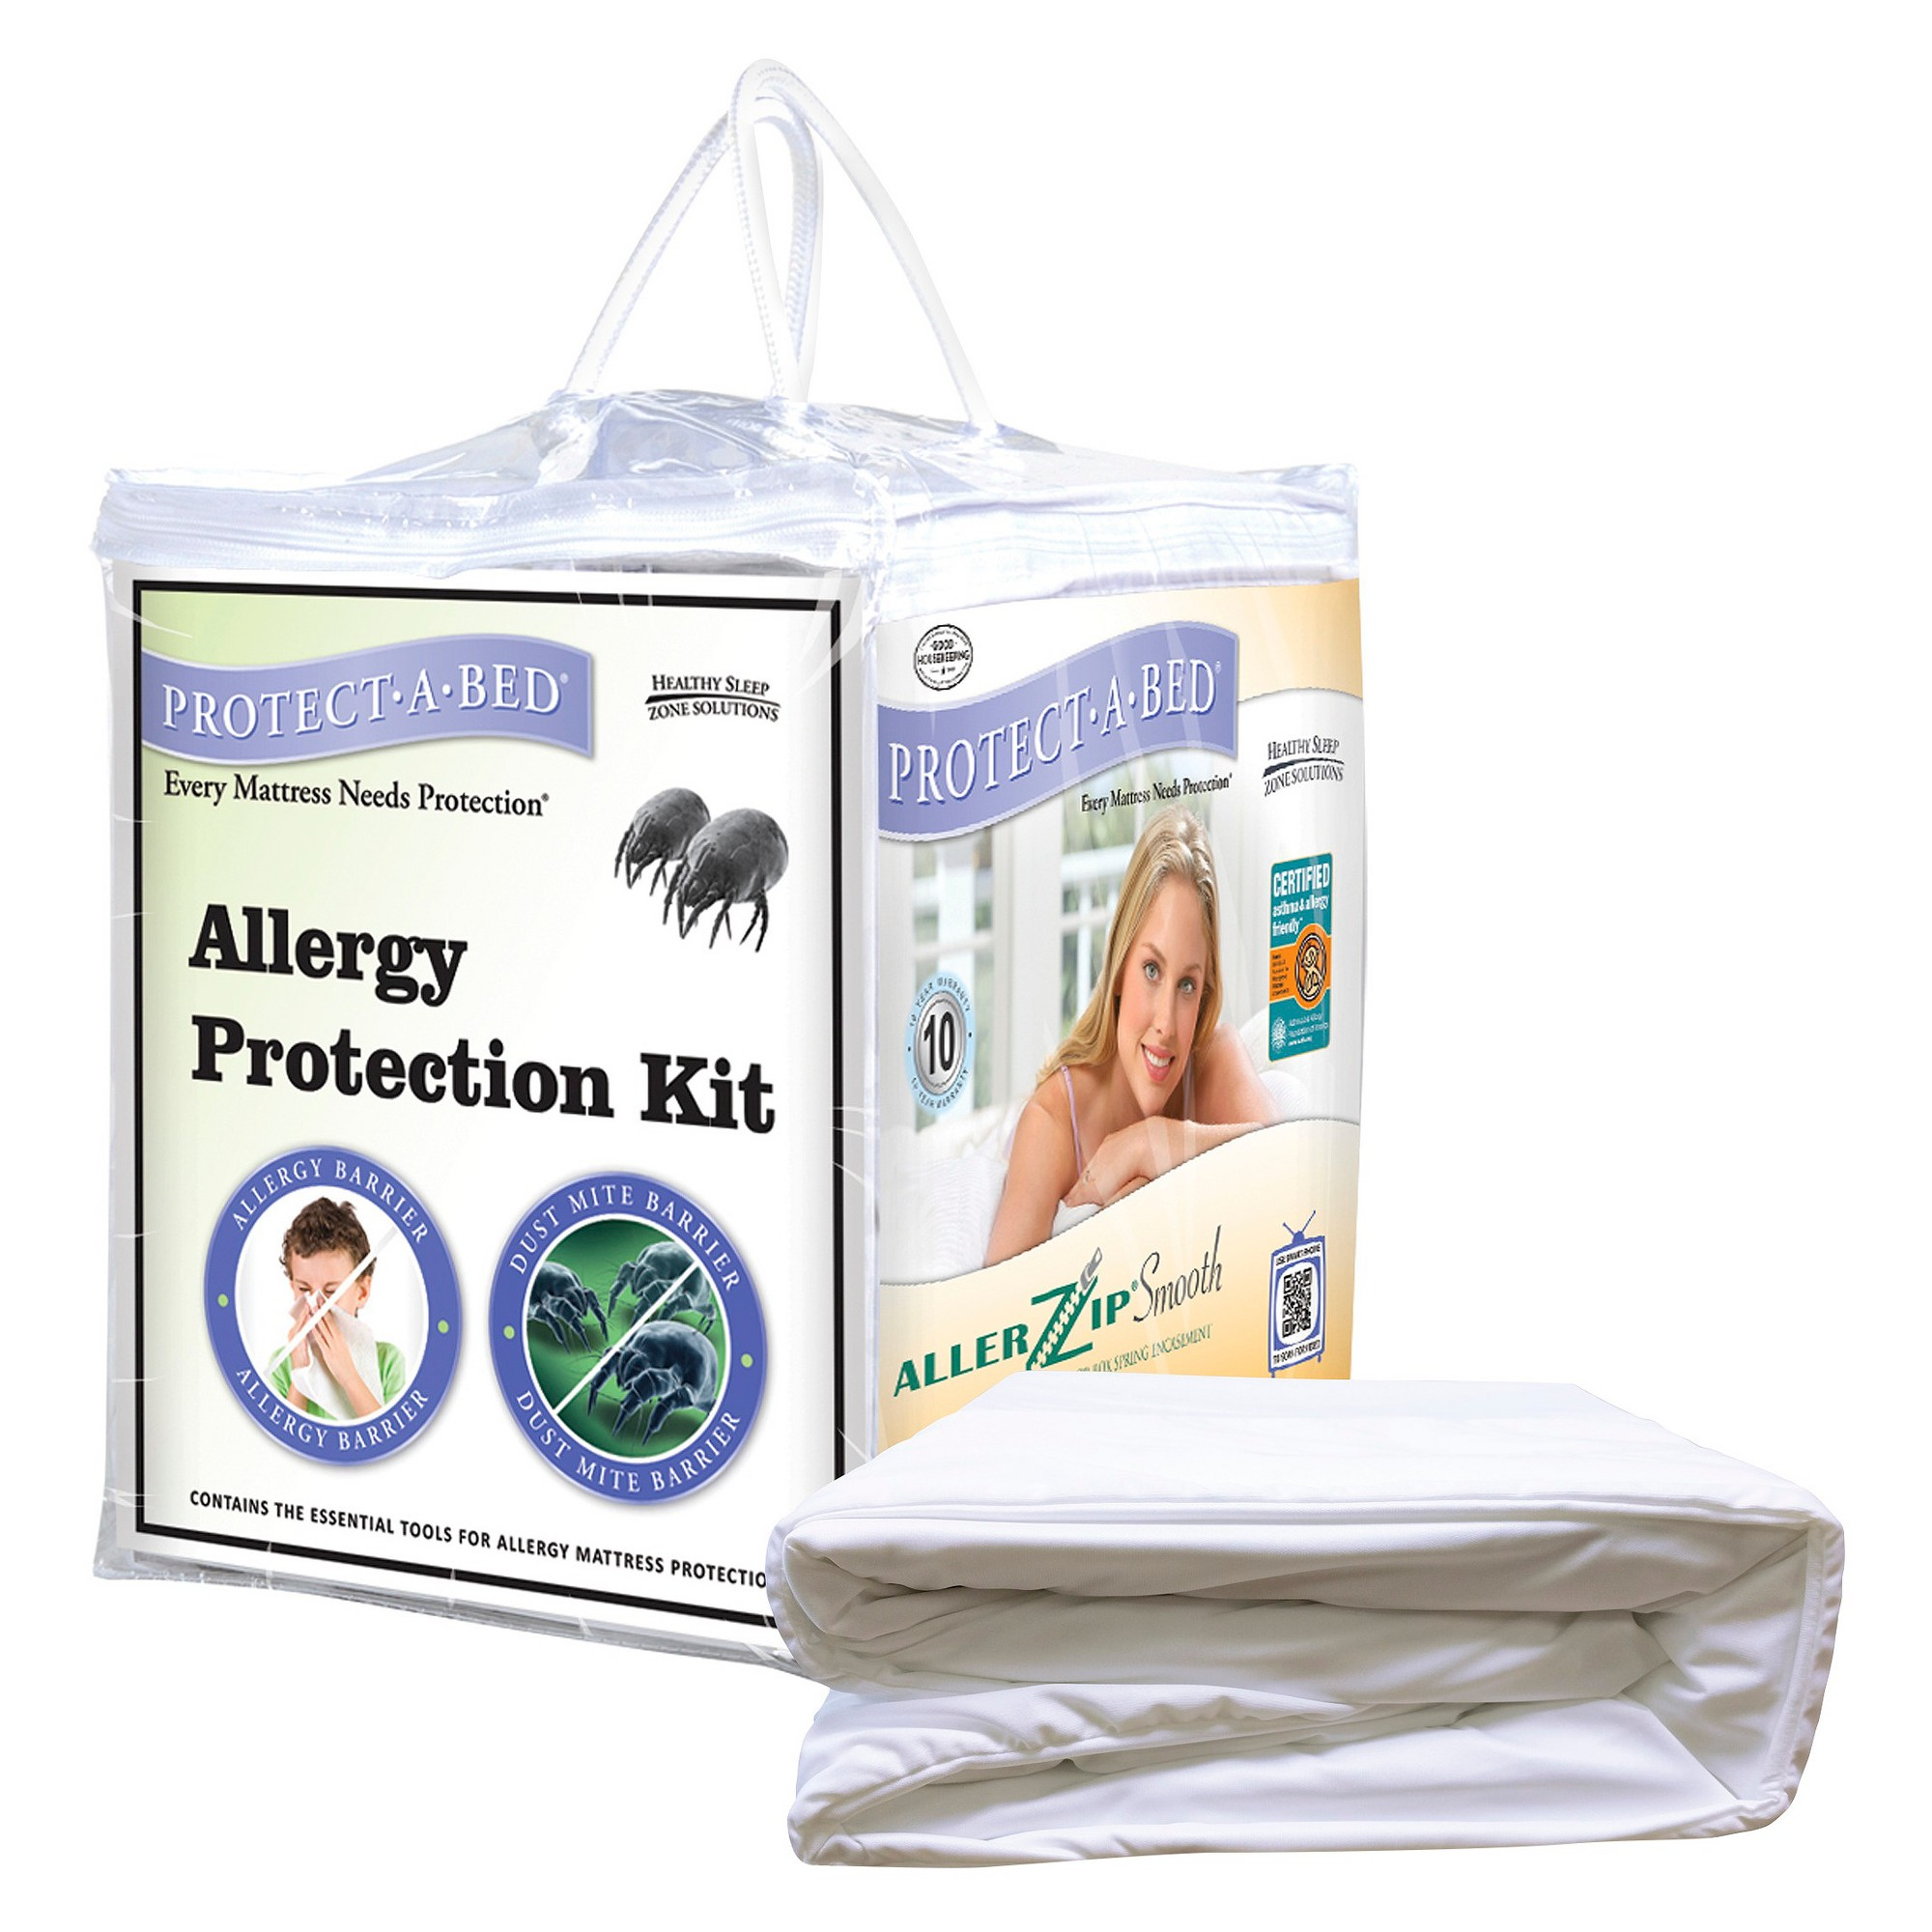 PROTECTABED Allergy Protection Kit White (Cal King